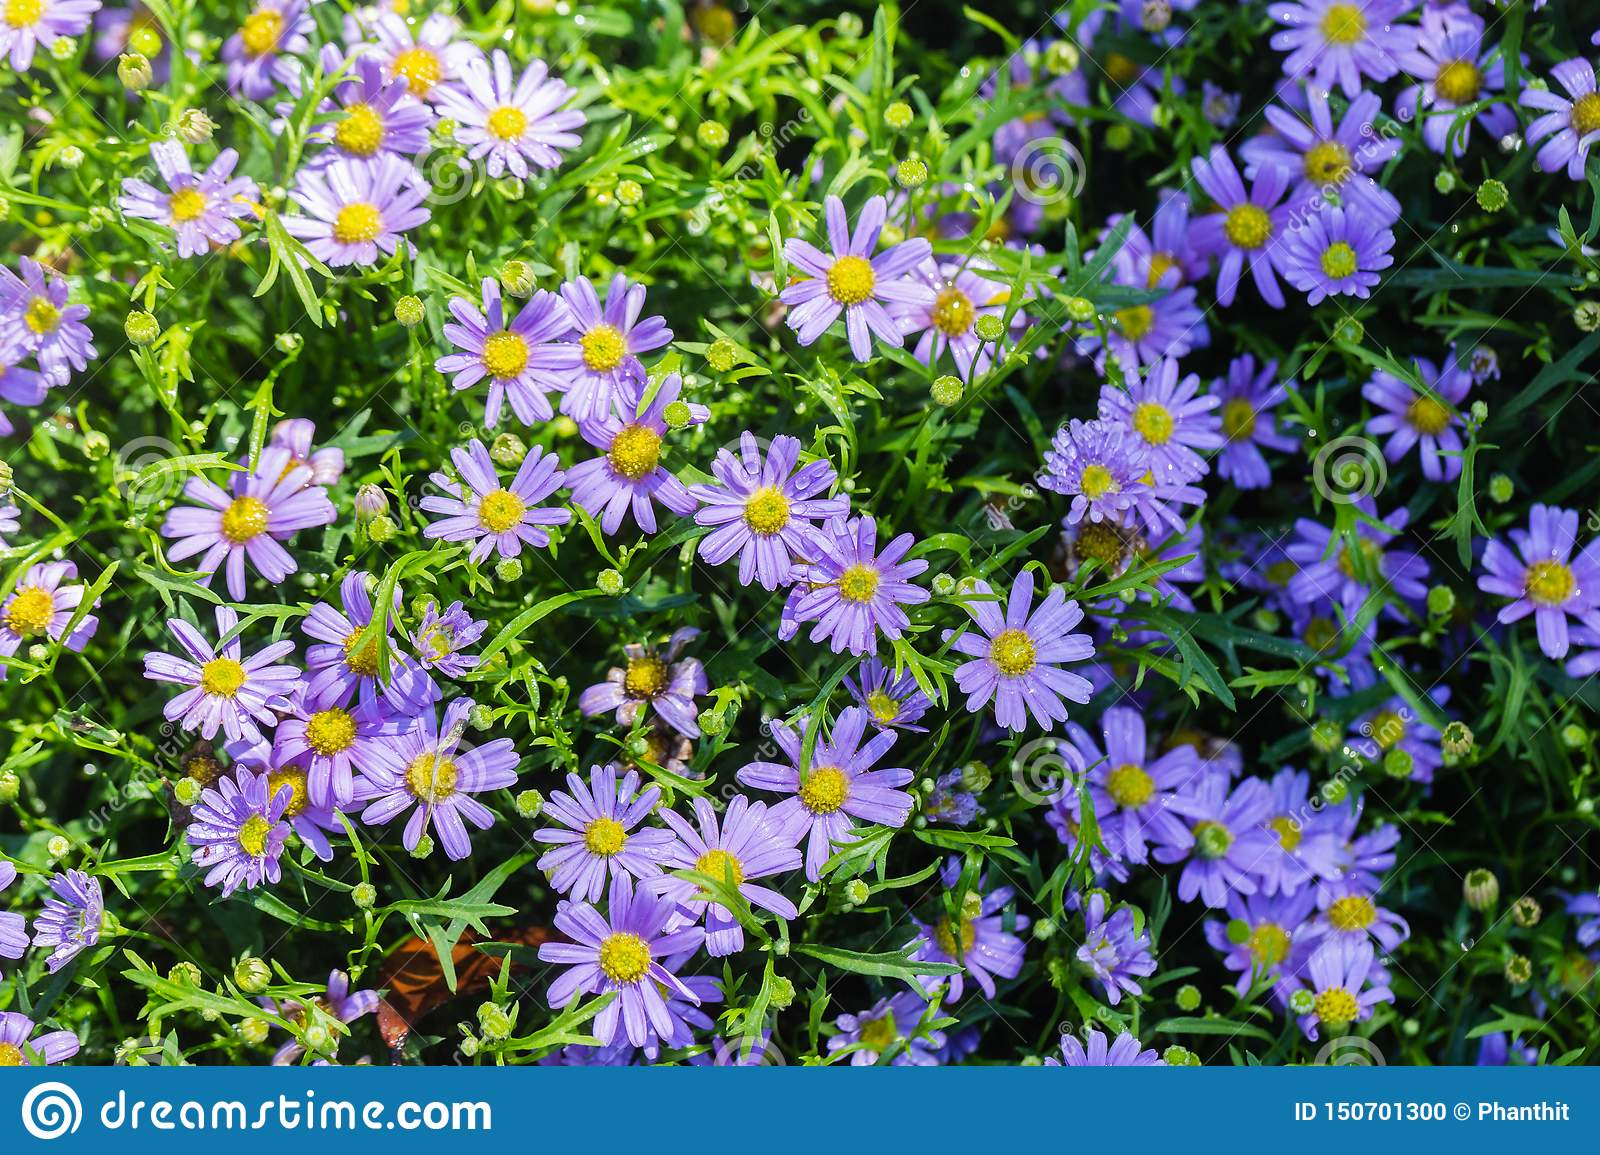 Daisy flower and green leaf background in flower garden at sunny summer or spring day for beauty decoration and agriculture design